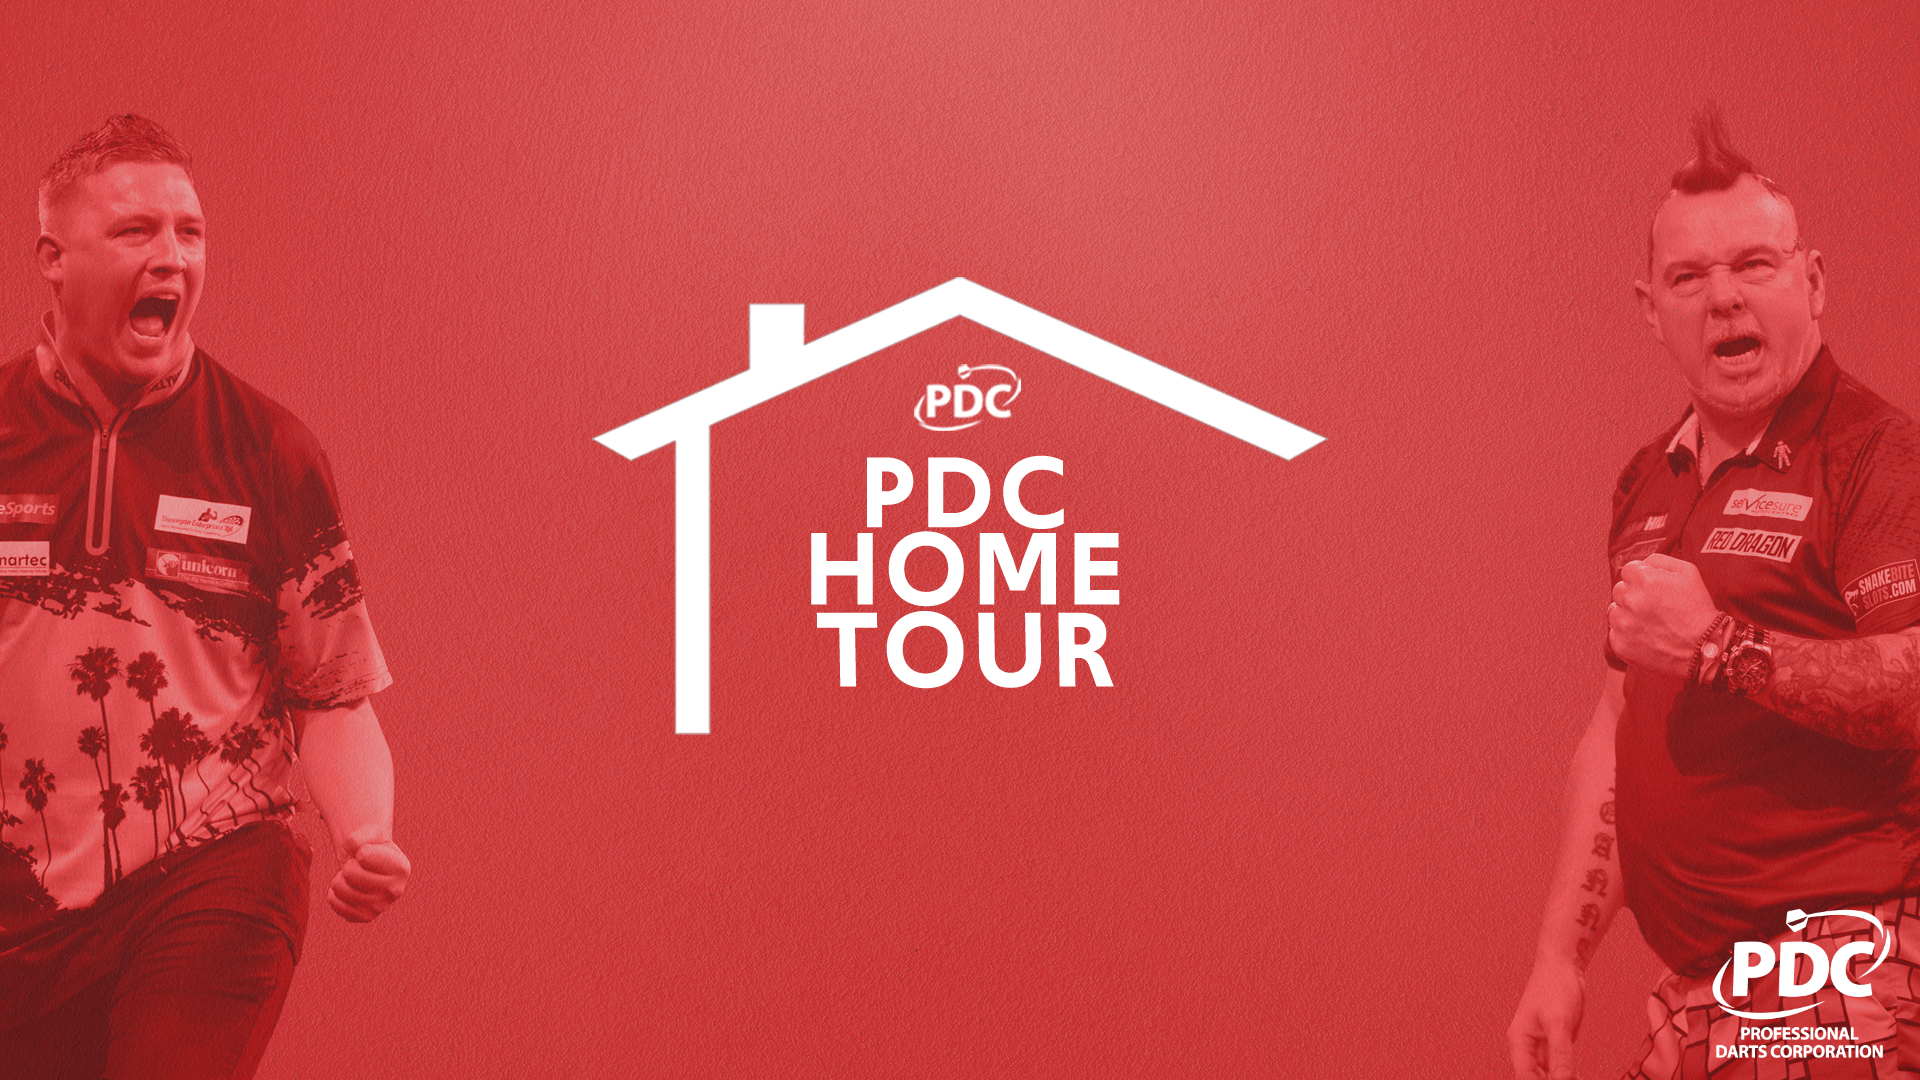 Home Pdc